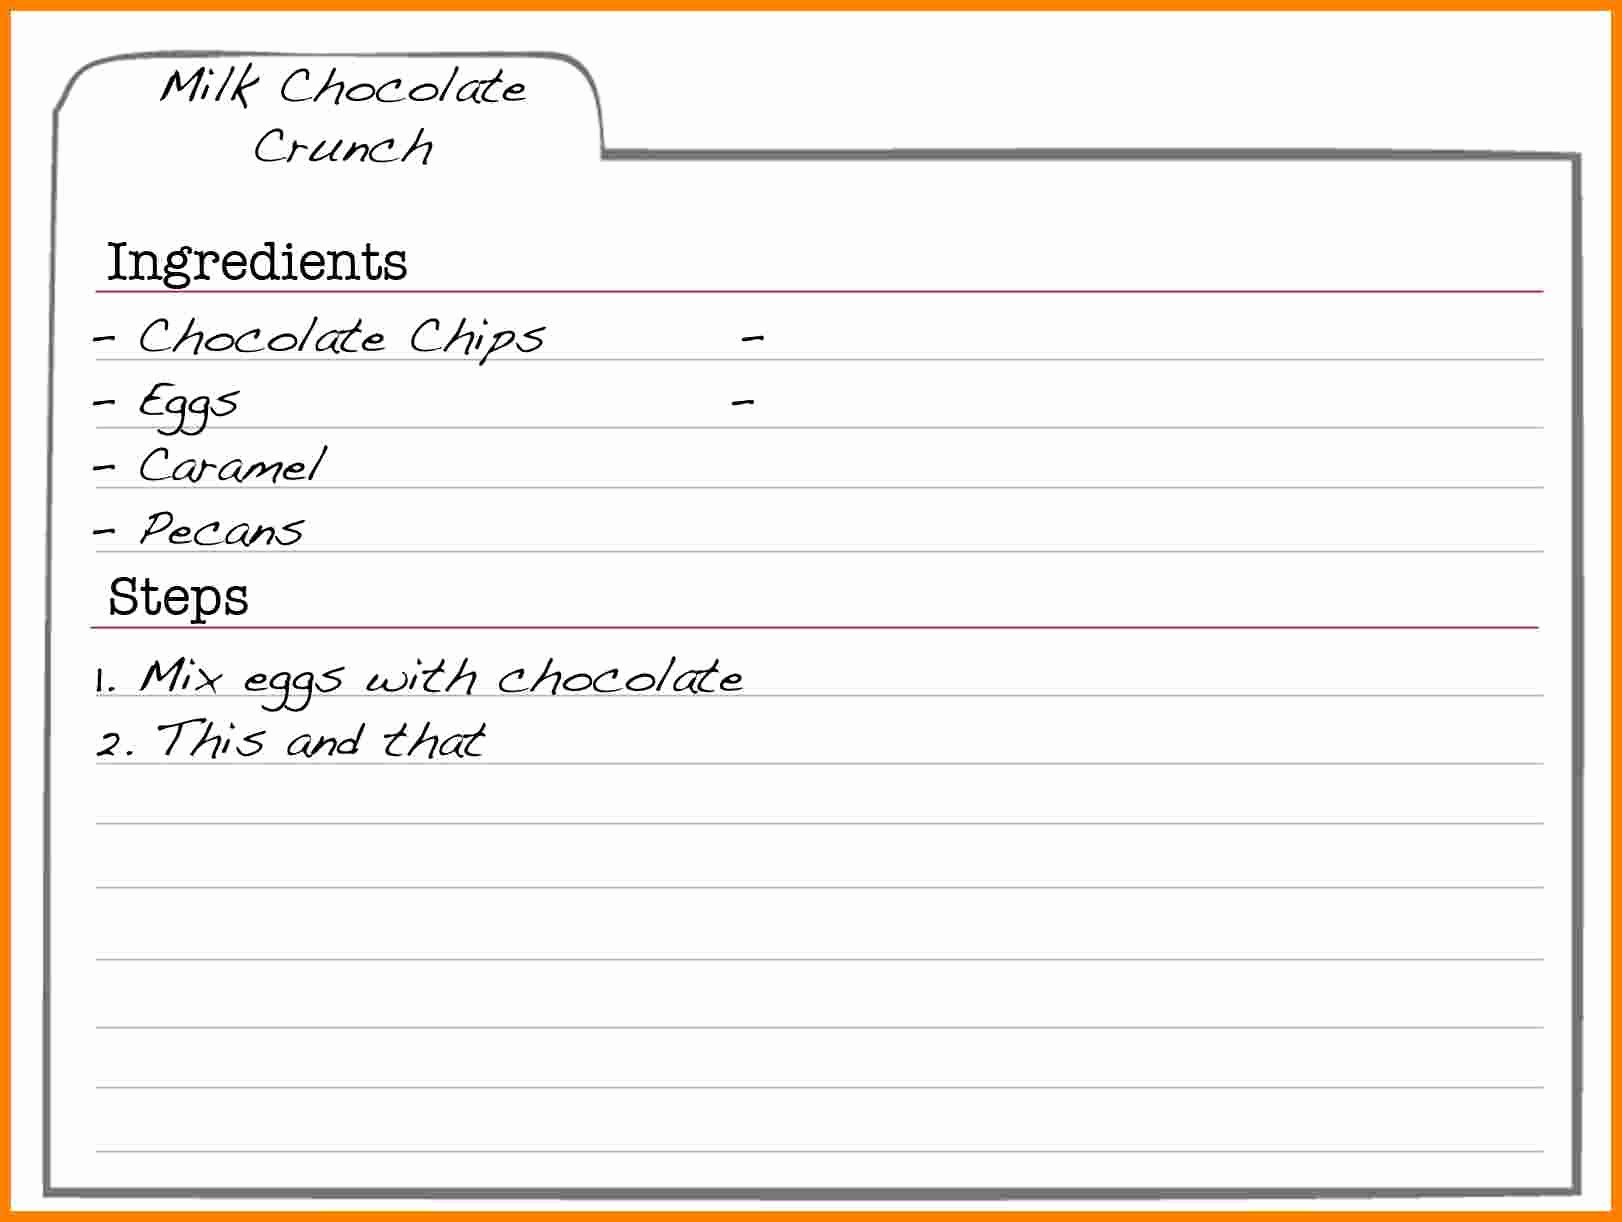 Free Recipe Templates for Microsoft Word New 5 Free Editable Recipe Card Templates for Microsoft Word